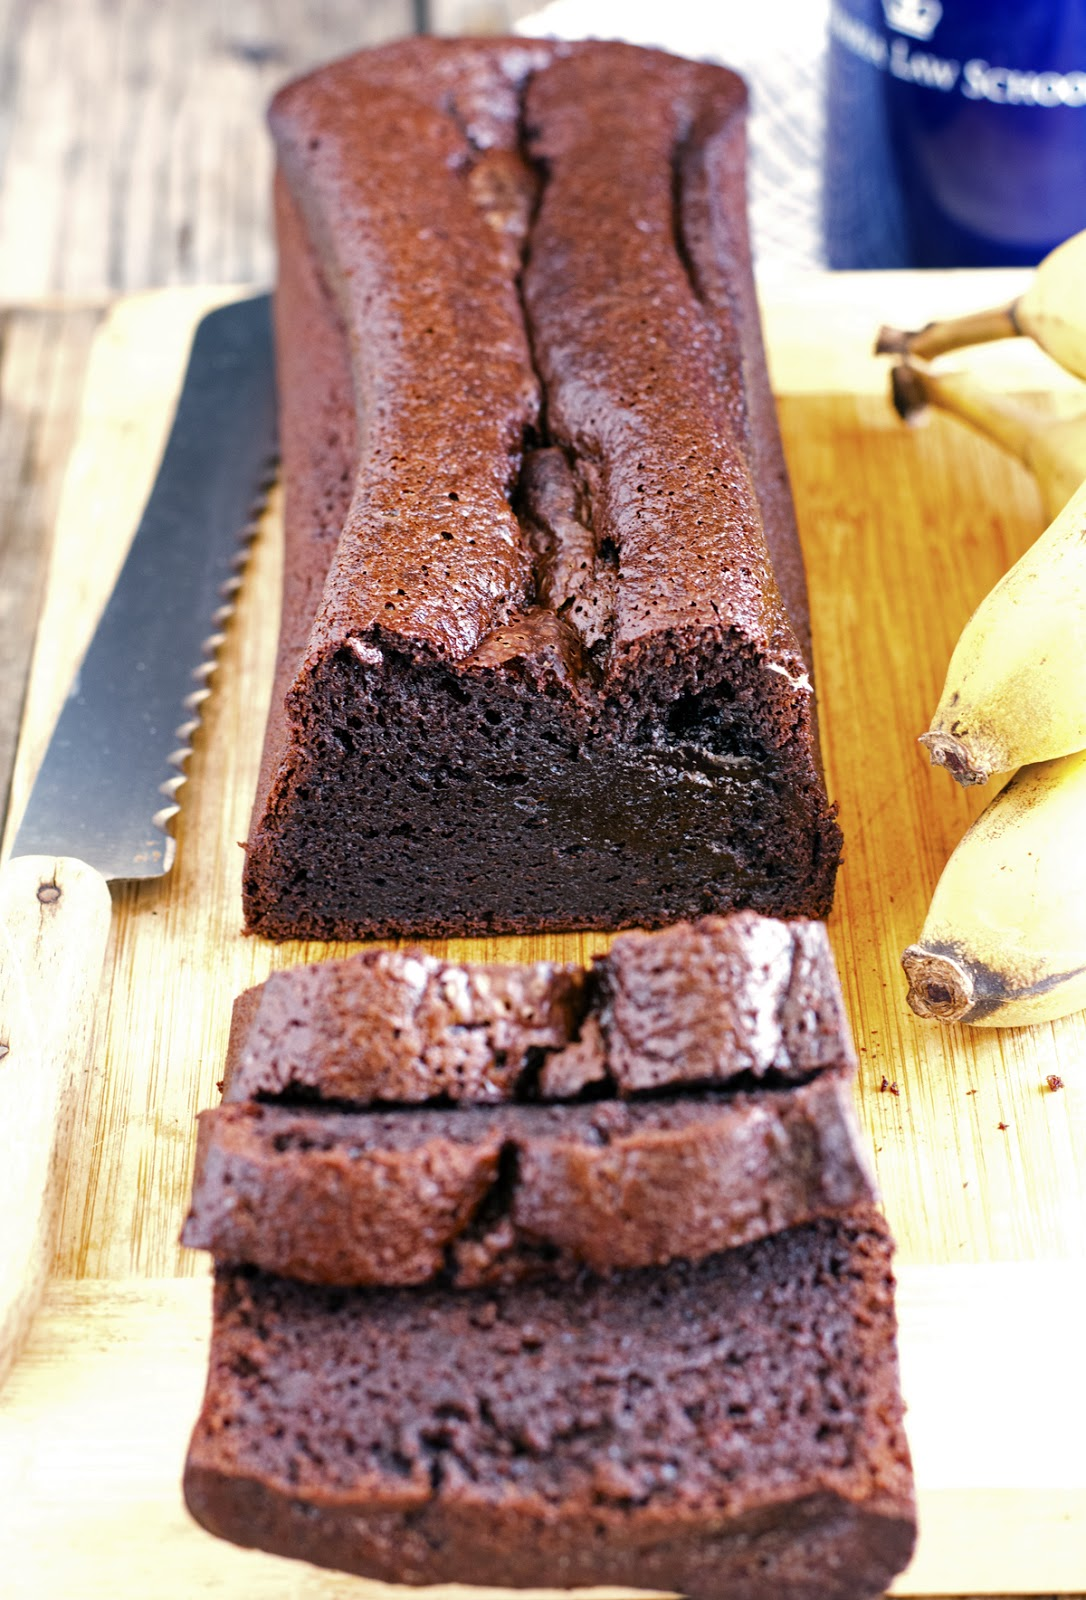 (Gluten-Free) Blender Chocolate Banana Bread